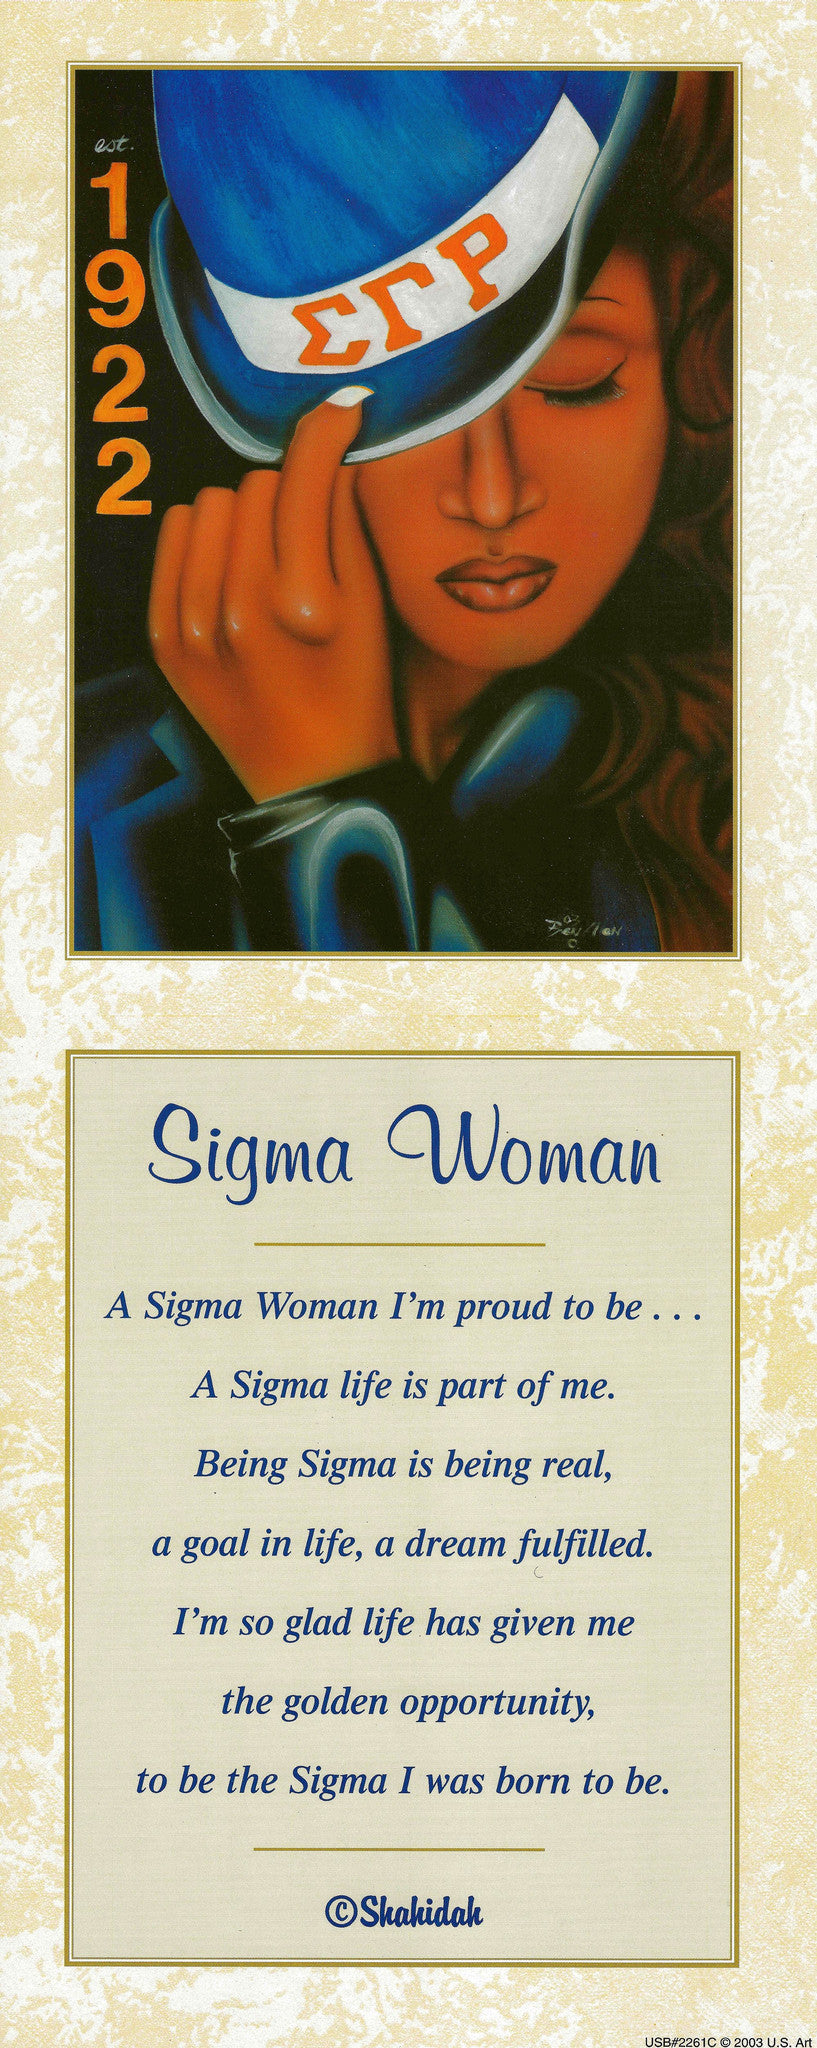 Sigma Woman by Fred Mathews and Shahidah